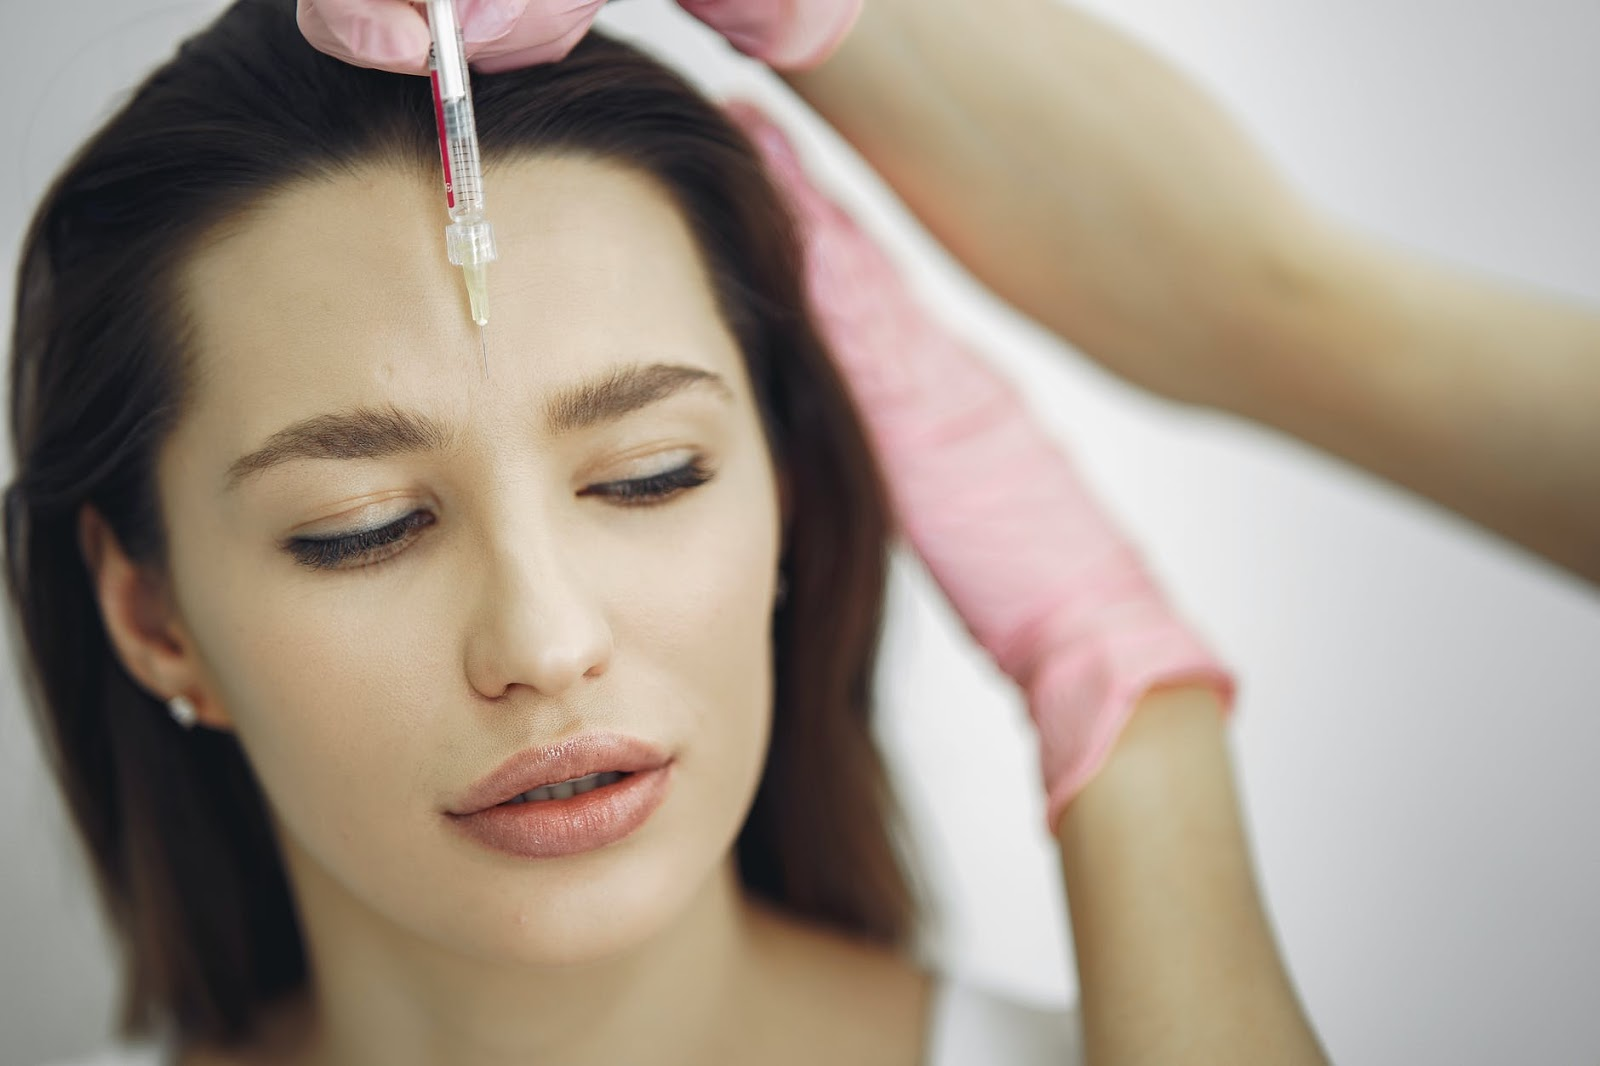 How to Prepare For Facelift Surgery